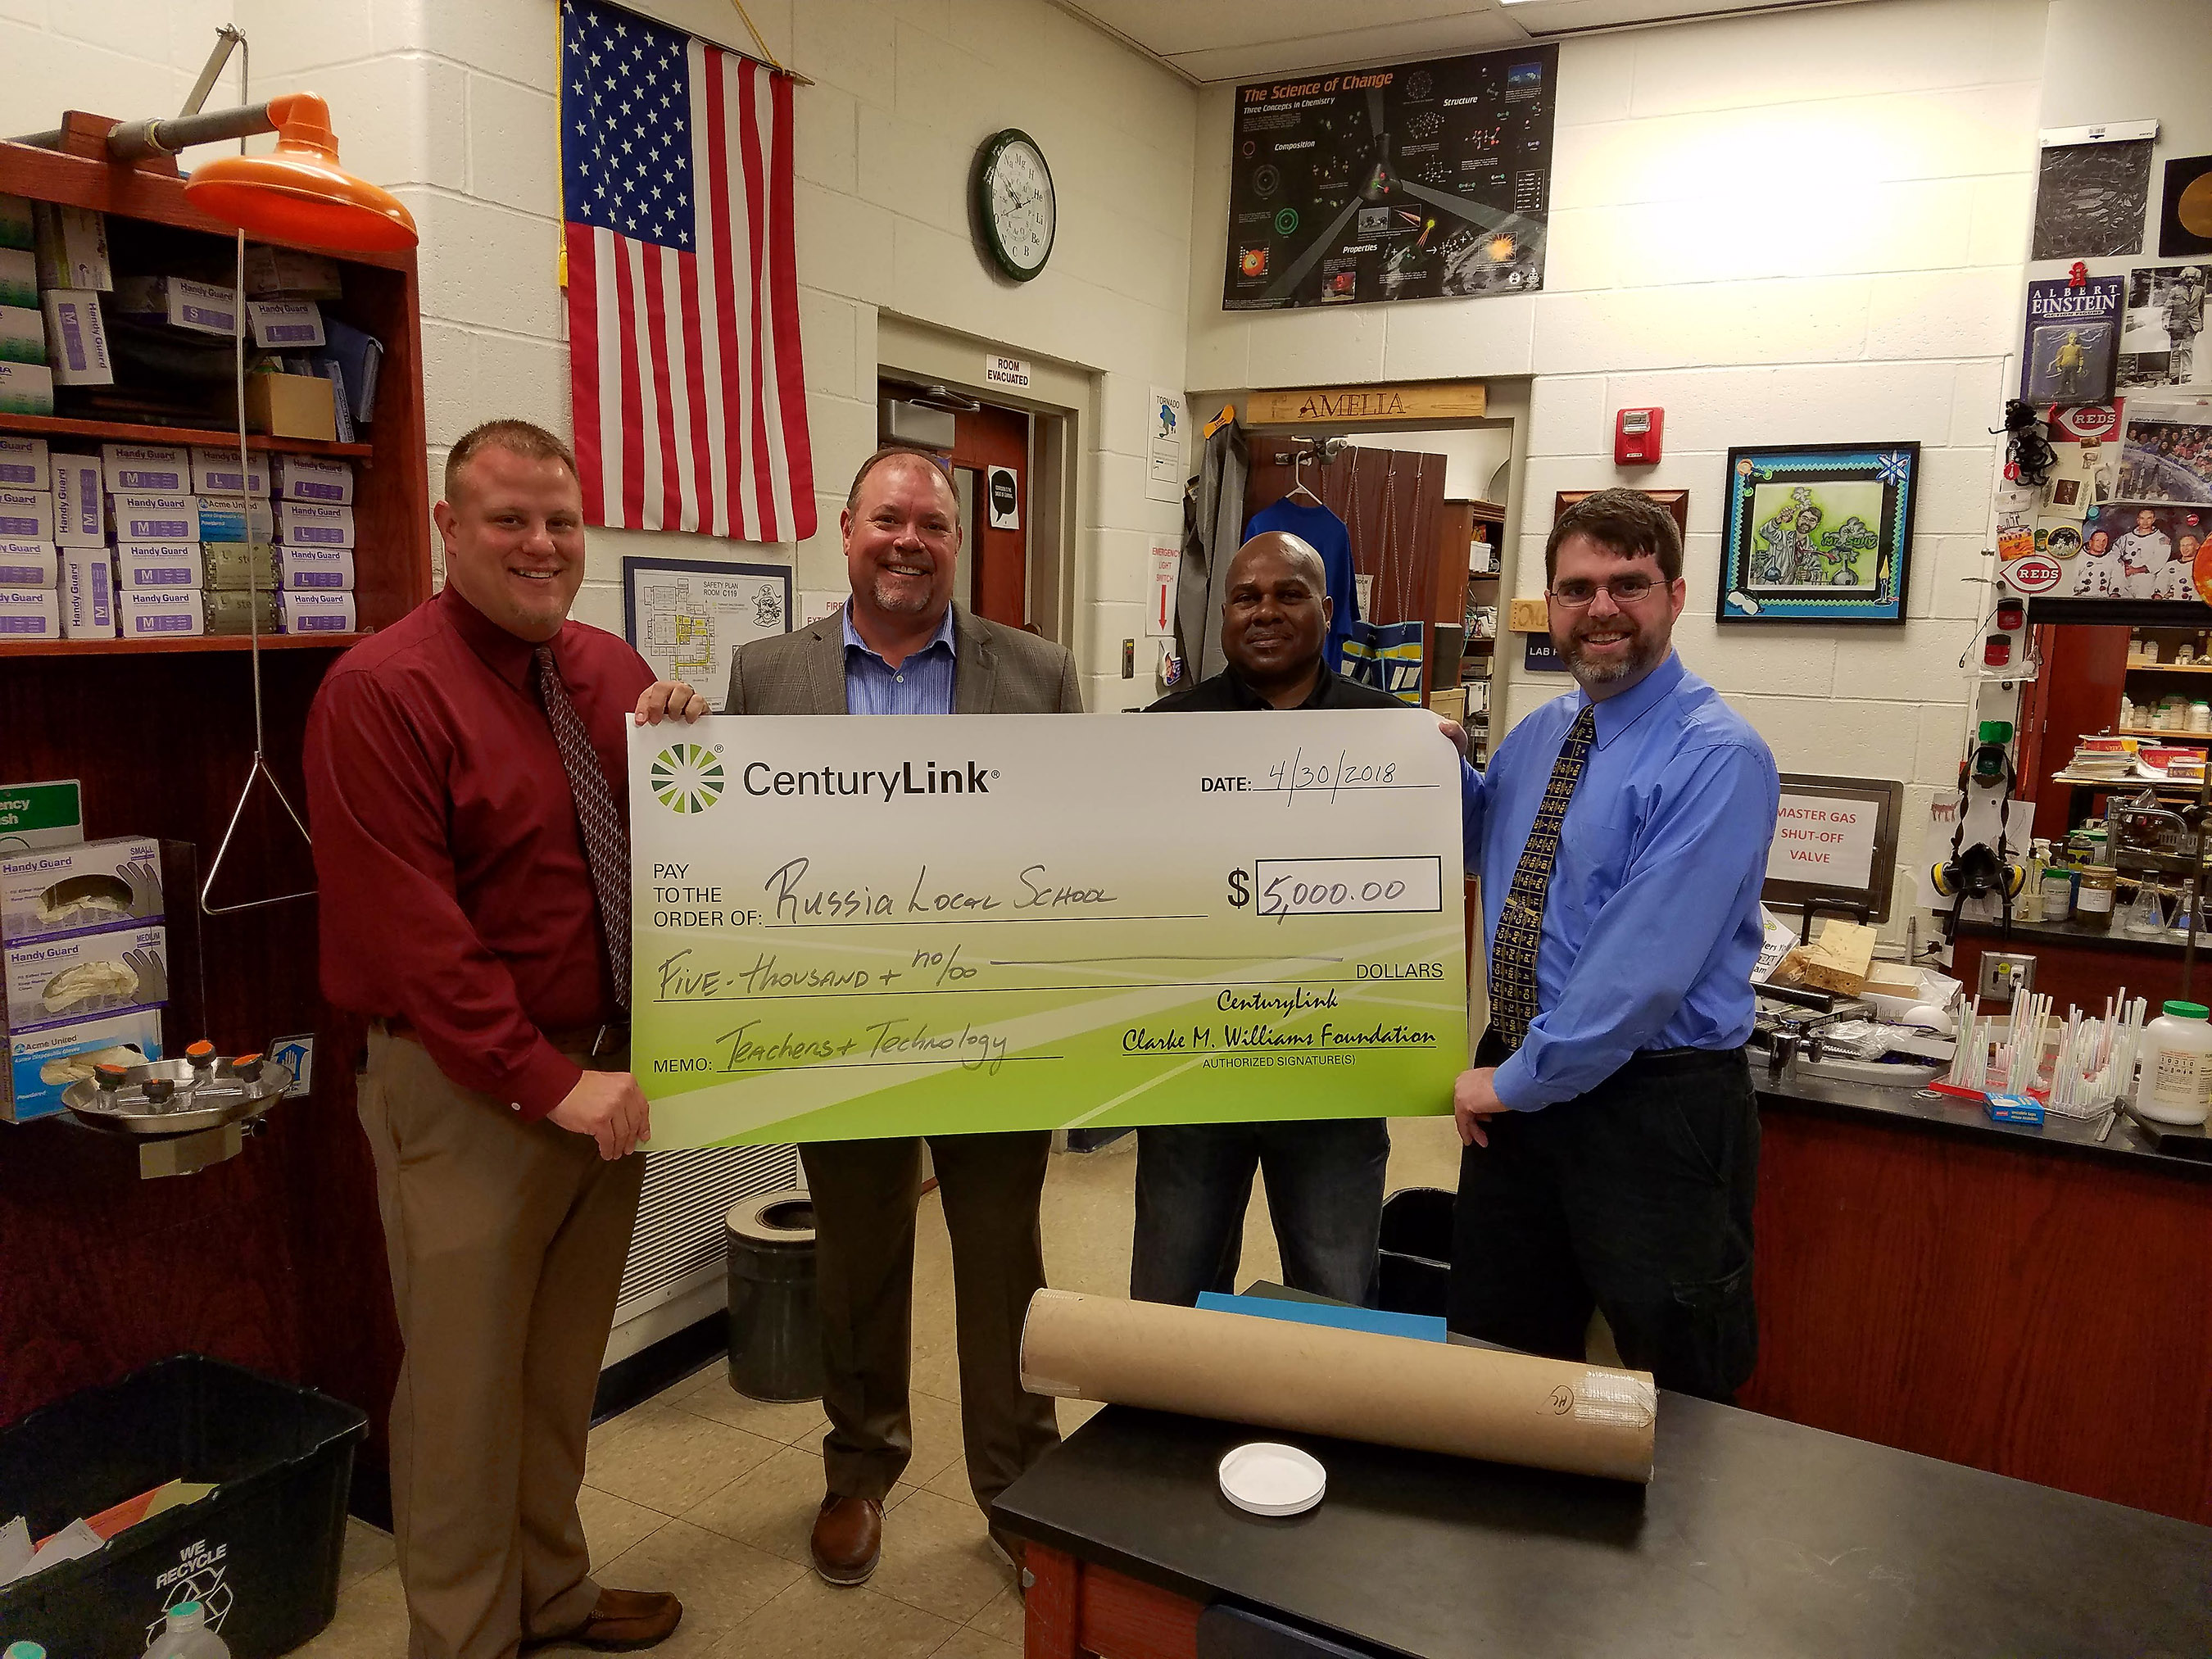 Russia (Ohio) Local School Principal, Brian Hogan, CenturyLink's Herb Cavanah and Todd White with Science teacher Eric Sullenberger accepting a Teachers and Technology grant award from CenturyLink to build his project, Digital Data Collection for Physics.